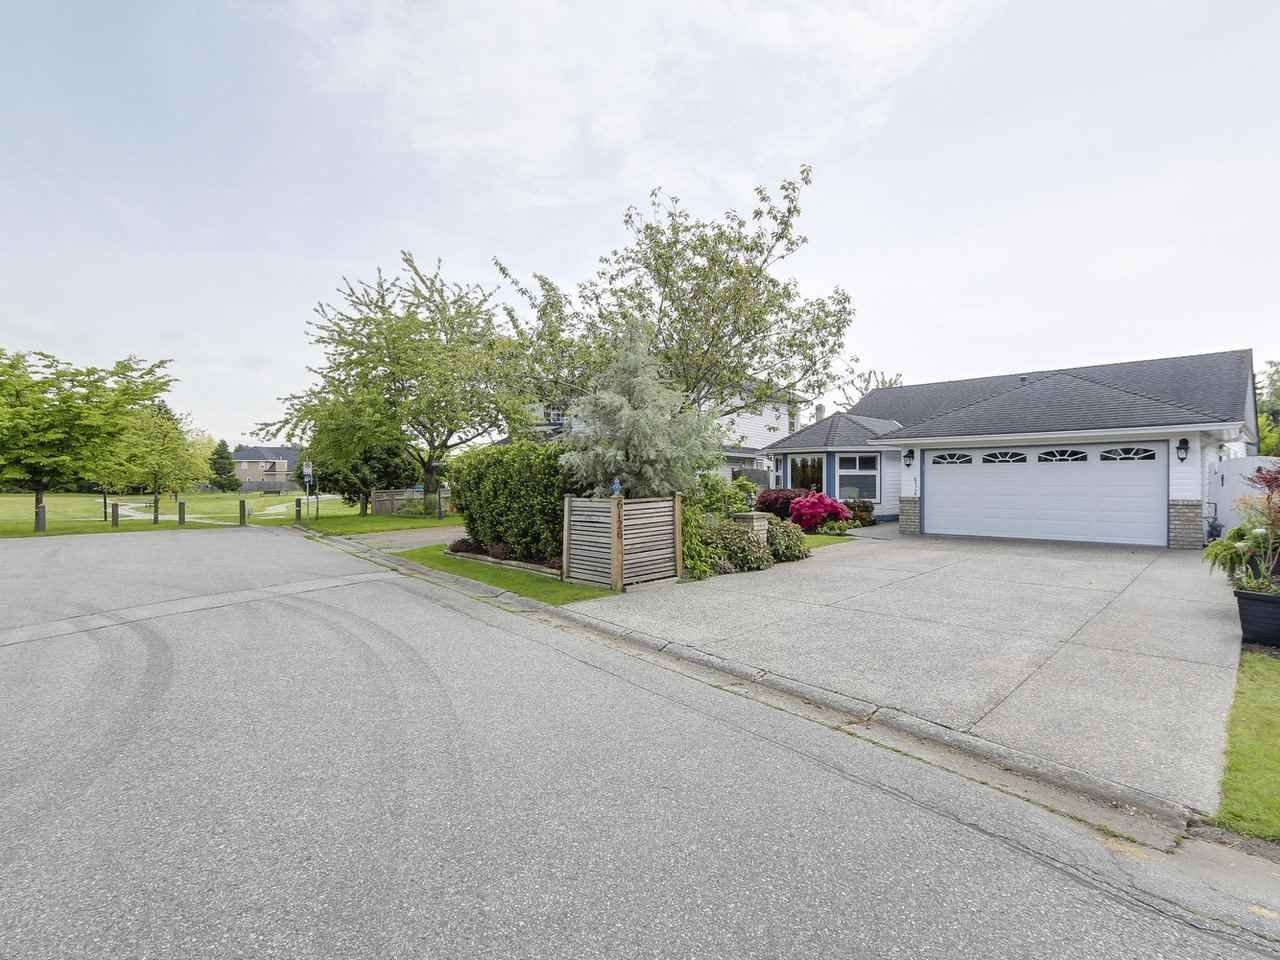 Main Photo: 6126 GALBRAITH CRESCENT in Delta: Holly House for sale (Ladner)  : MLS®# R2168761